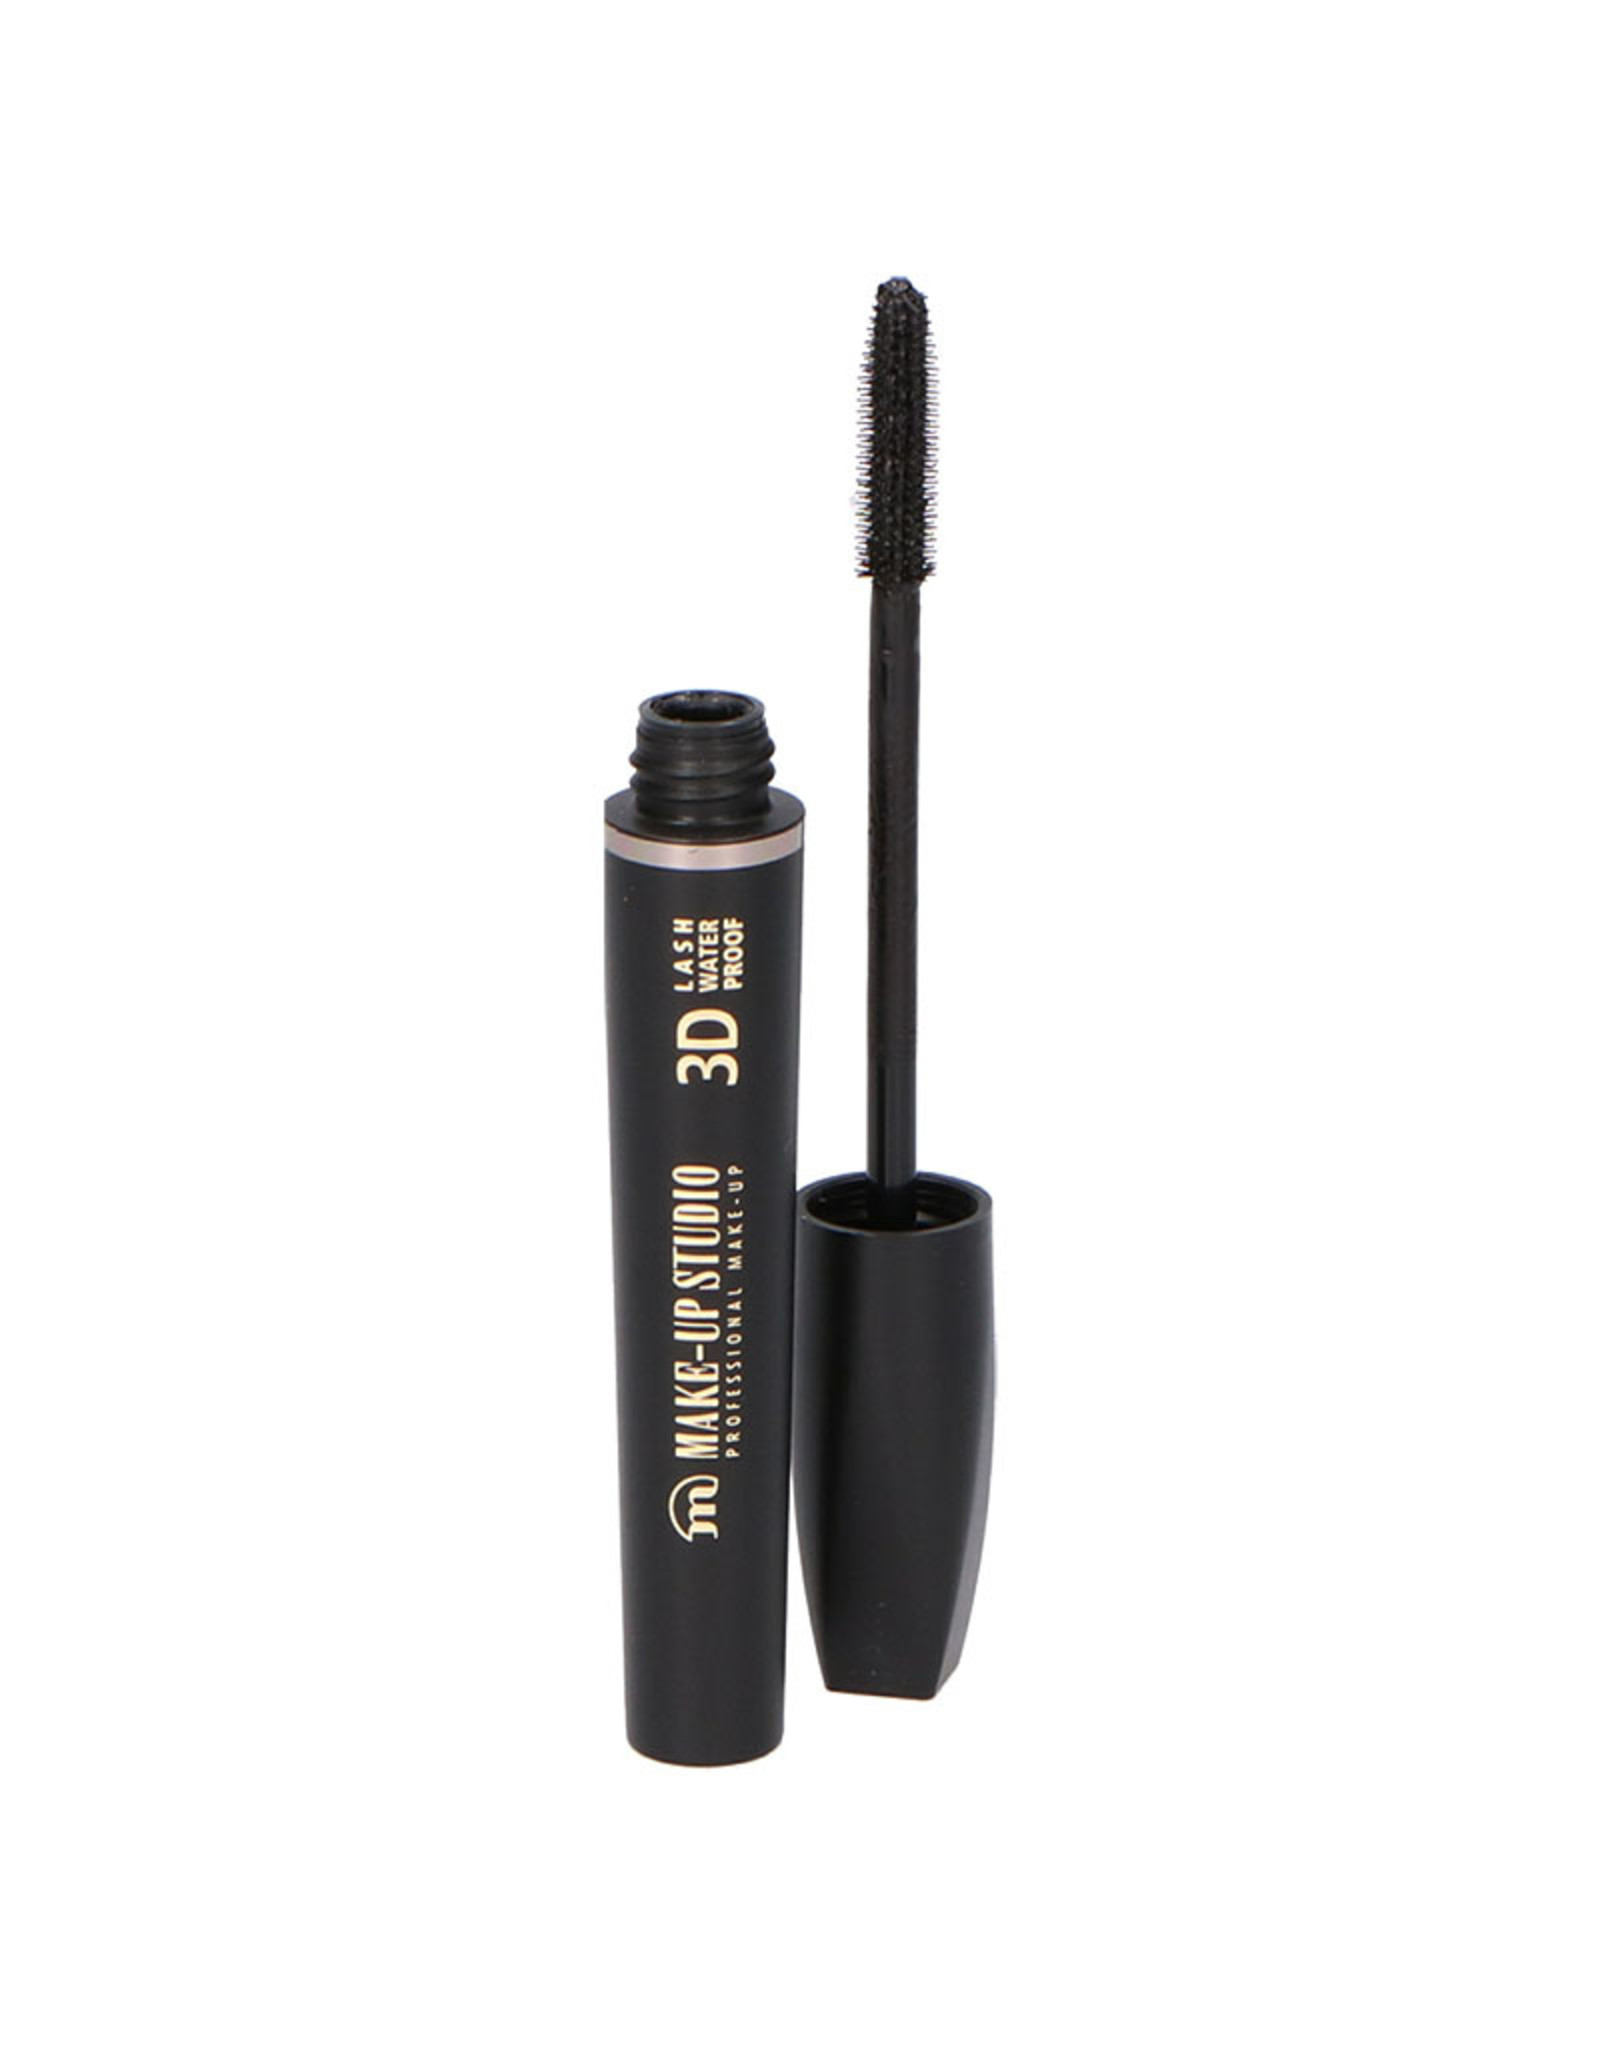 MAKE-UP STUDIO MASCARA WATERPROOF 3D EXTRA BLACK